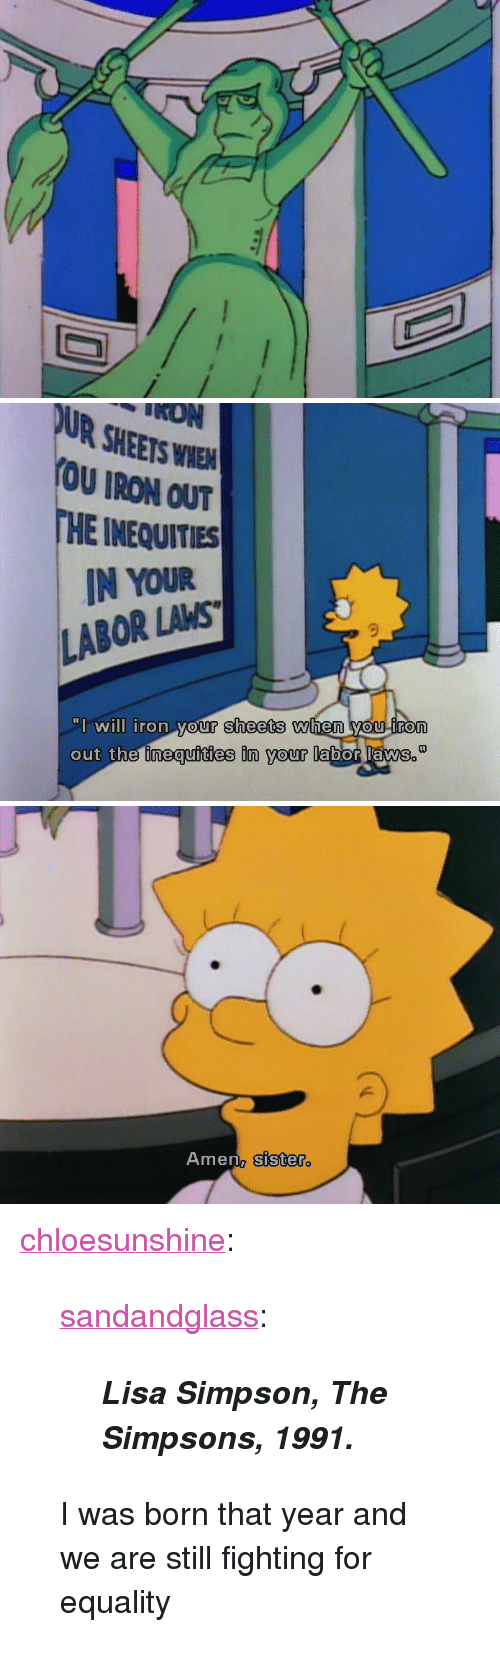 """Lisa Simpson: IDN  UR SHEETS WHEA  OU IRON OUT  HE INEQUITIES  IN YOUR  LABOR LAMS  will iron your sheets when you iron  out the fimeaufities in vour labor lams   Amen, sister <p><a class=""""tumblr_blog"""" href=""""http://chloesunshine.tumblr.com/post/91747331232/sandandglass-lisa-simpson-the-simpsons"""" target=""""_blank"""">chloesunshine</a>:</p>  <blockquote> <p><a class=""""tumblr_blog"""" href=""""http://sandandglass.tumblr.com/post/91646326262/lisa-simpson-the-simpsons-1991"""" target=""""_blank"""">sandandglass</a>:</p> <blockquote> <p><em><strong>Lisa Simpson, The Simpsons, 1991.</strong></em></p> </blockquote> <p>I was born that year and we are still fighting for equality</p> </blockquote>"""